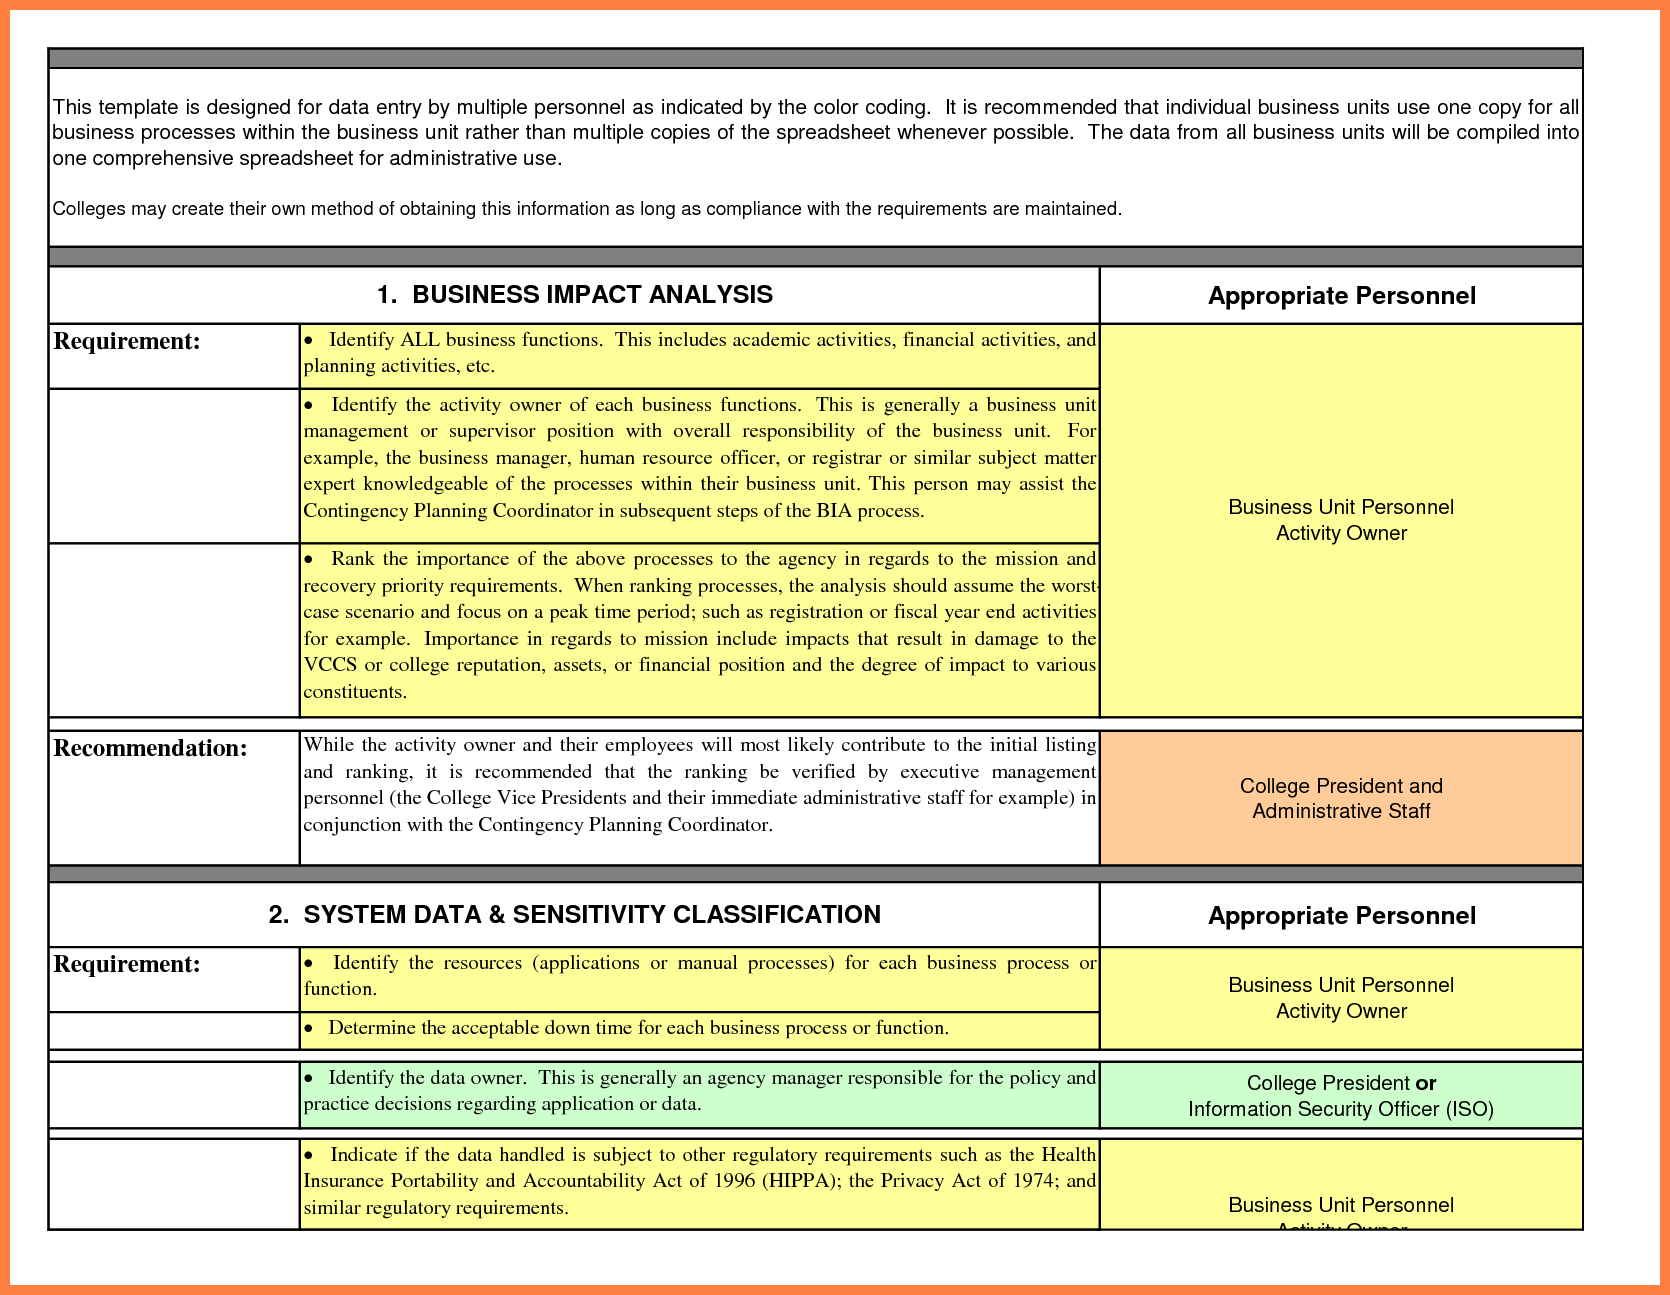 27 Images of Business Impact Assessment Template | dotcomstand.com